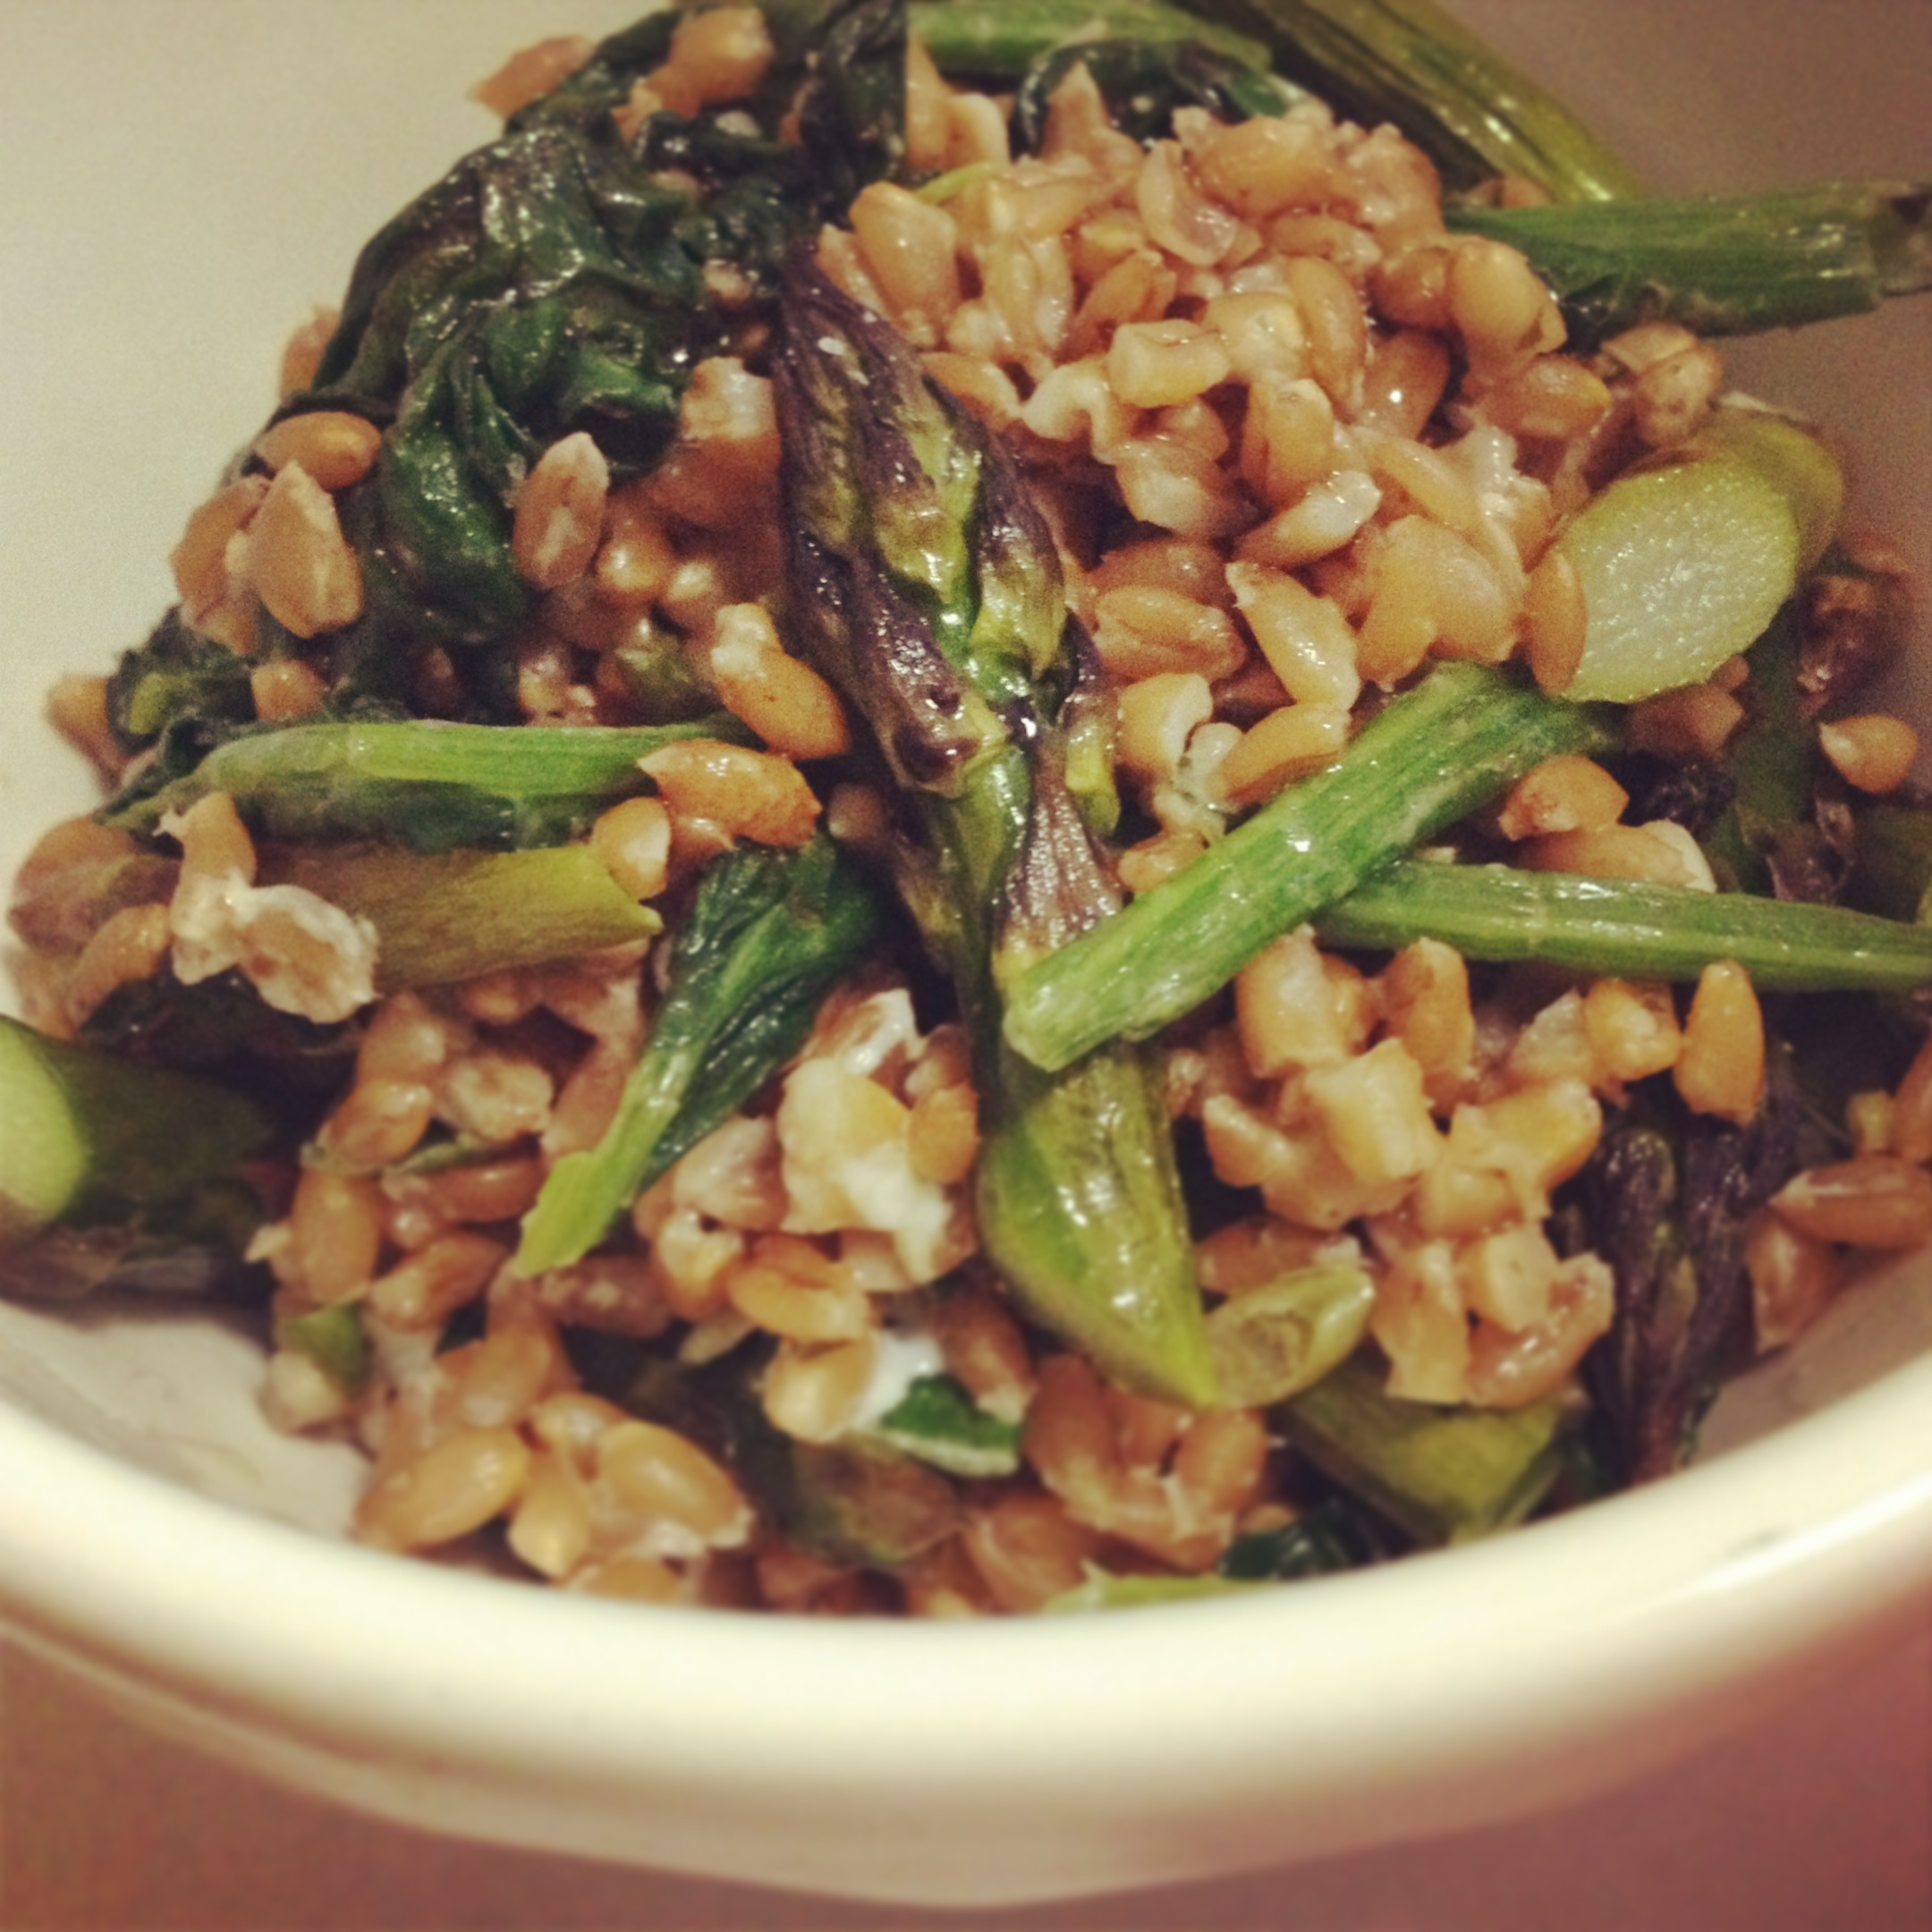 Roasted Asparagus And Red Pepper Farro Salad Recipes — Dishmaps